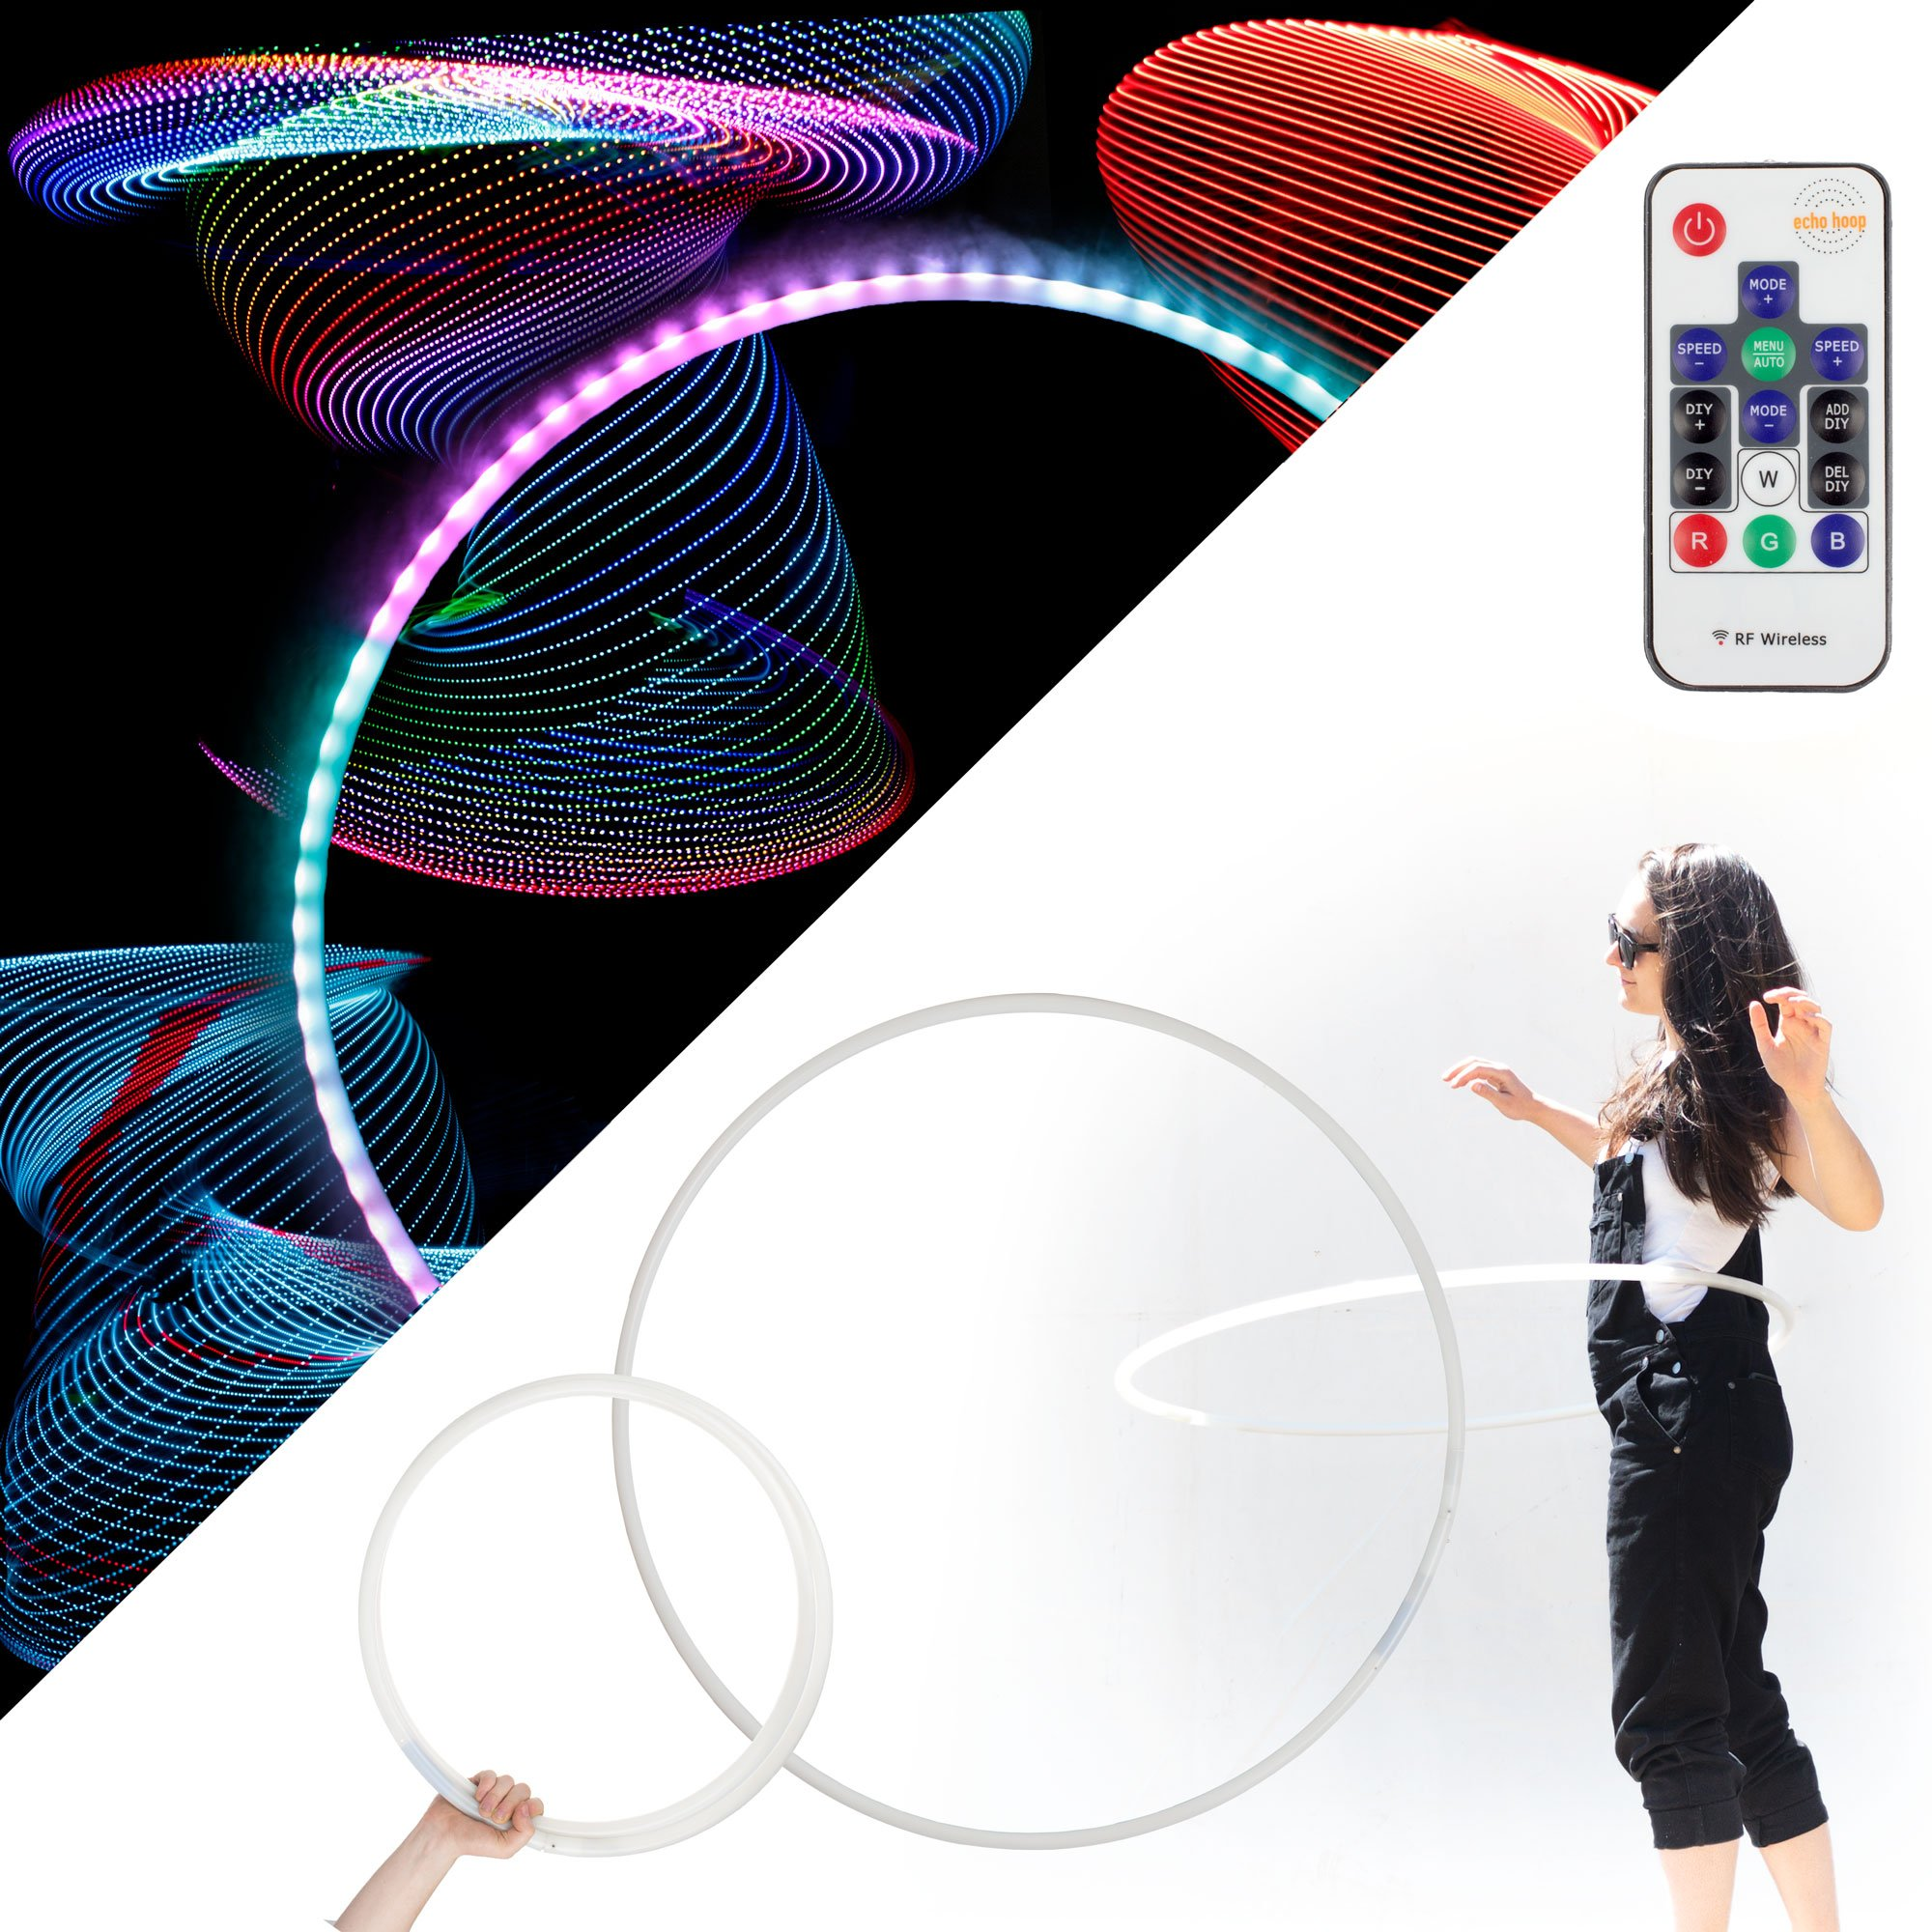 Echo Glow - Light Up Collapsible Professional Hula Hoop with 84 LED's, Fully Rechargeable + Remote Control! 300+ Light Patterns! by Echo Hoop (Image #1)